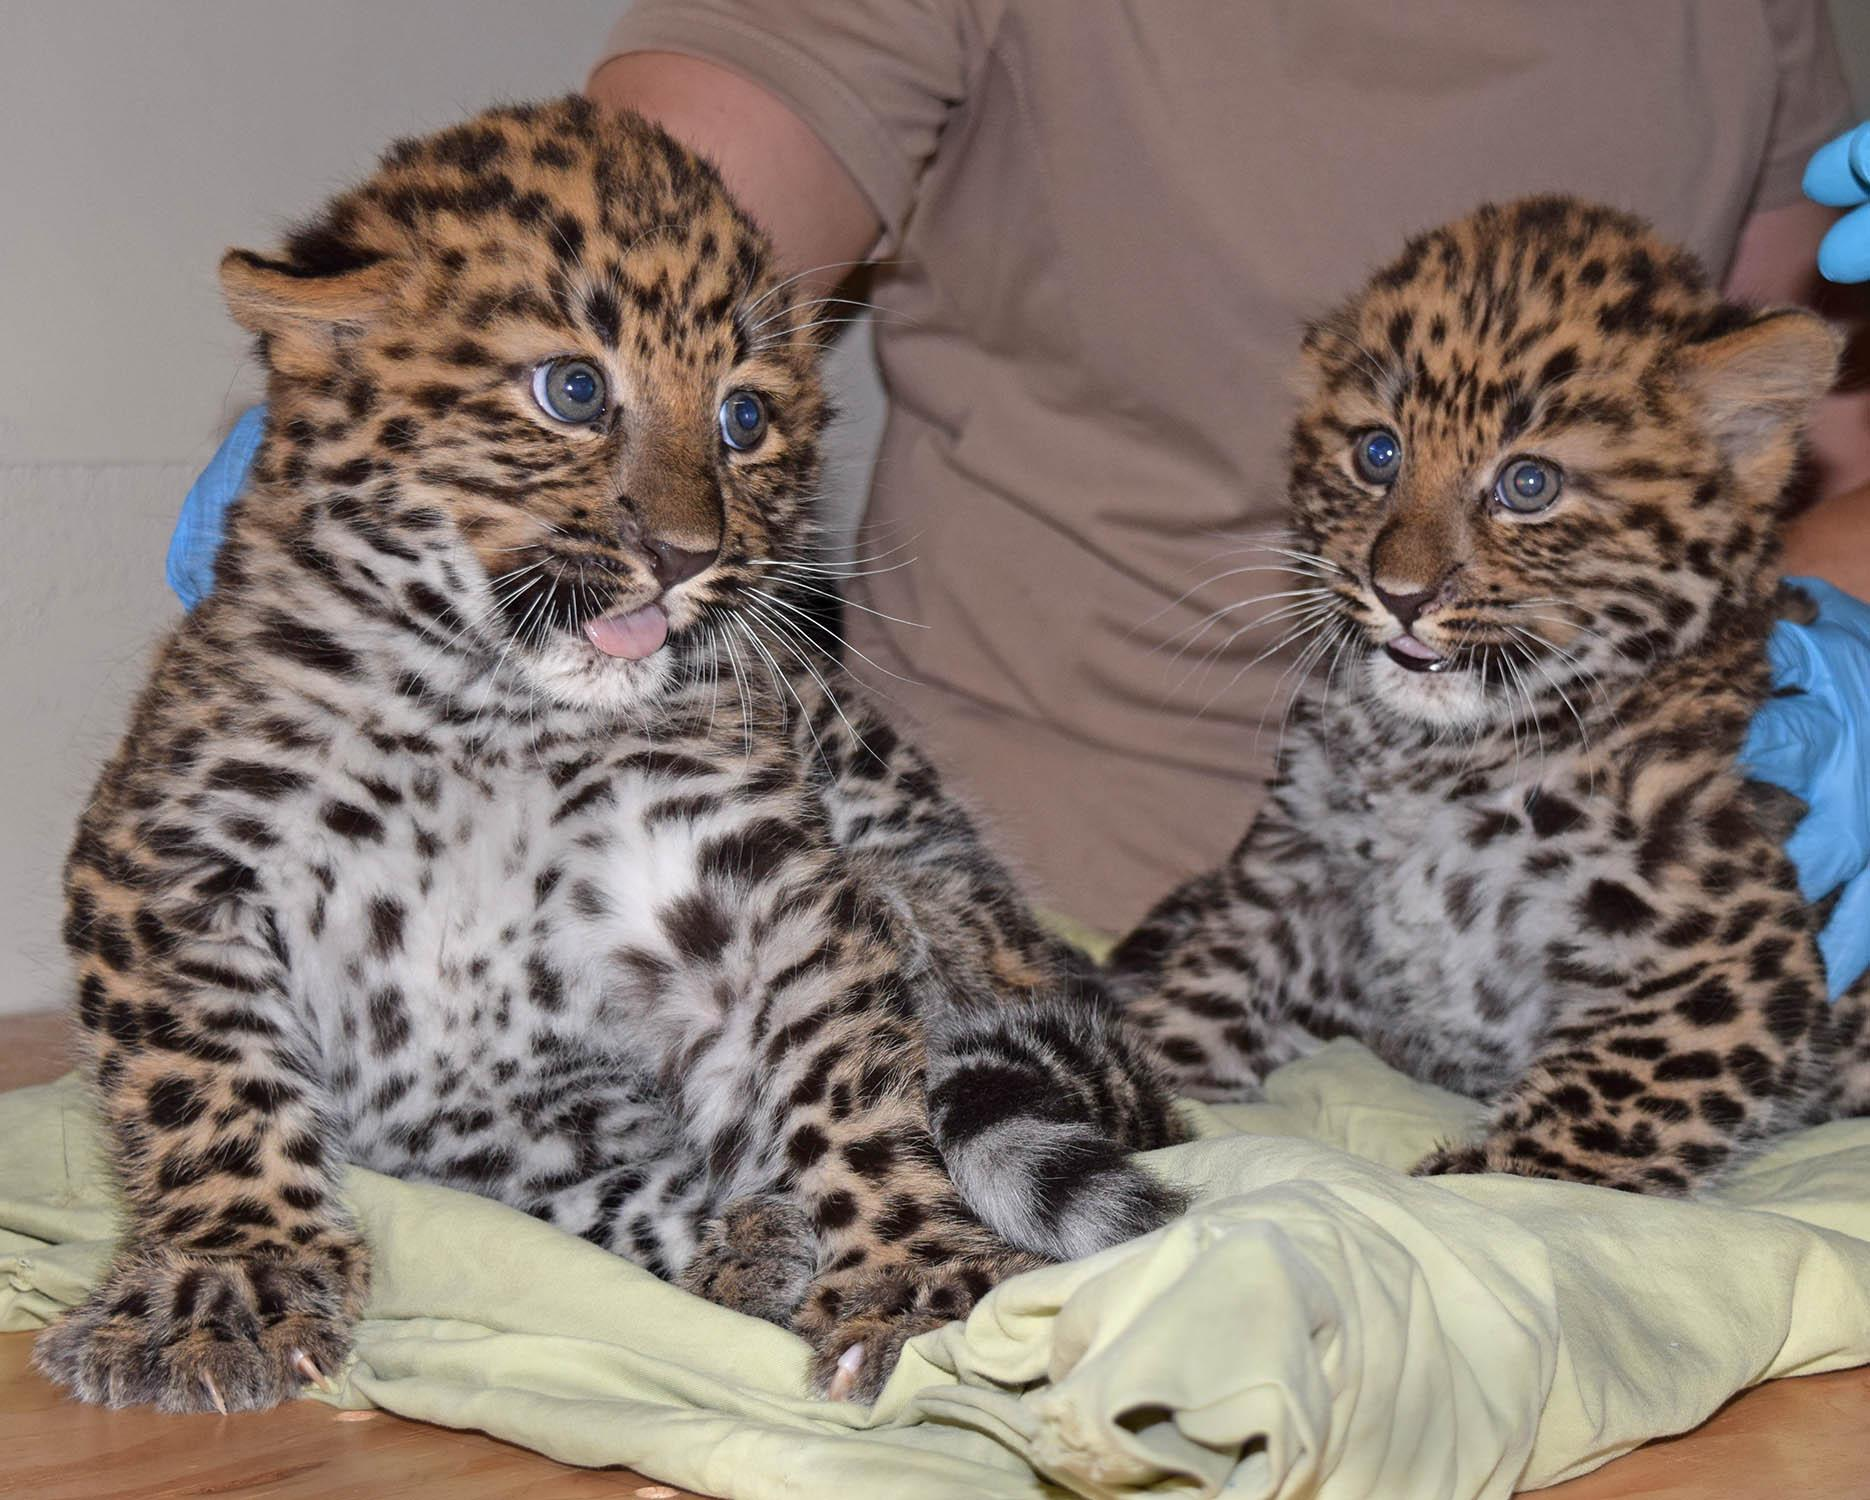 Brookfield Zoo's two newborn Amur lopeard cubs are currently living behind the scenes with their mother but will make their public debut in mid-July. (Cathy Bazzoni / Chicago Zoological Society)